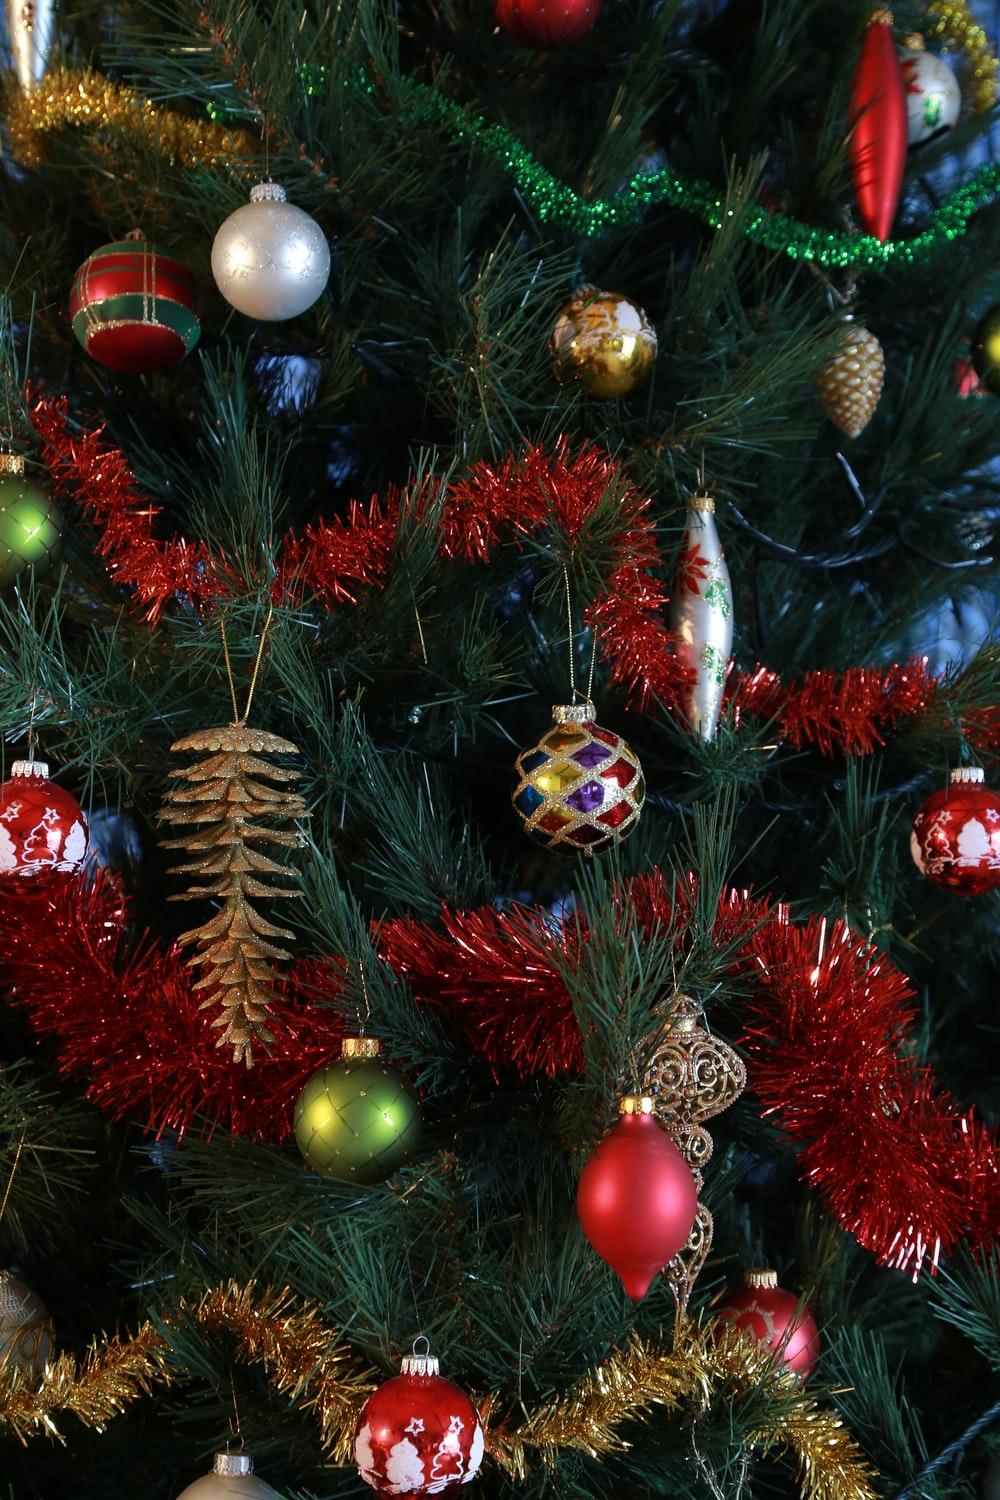 red and green bauble balls